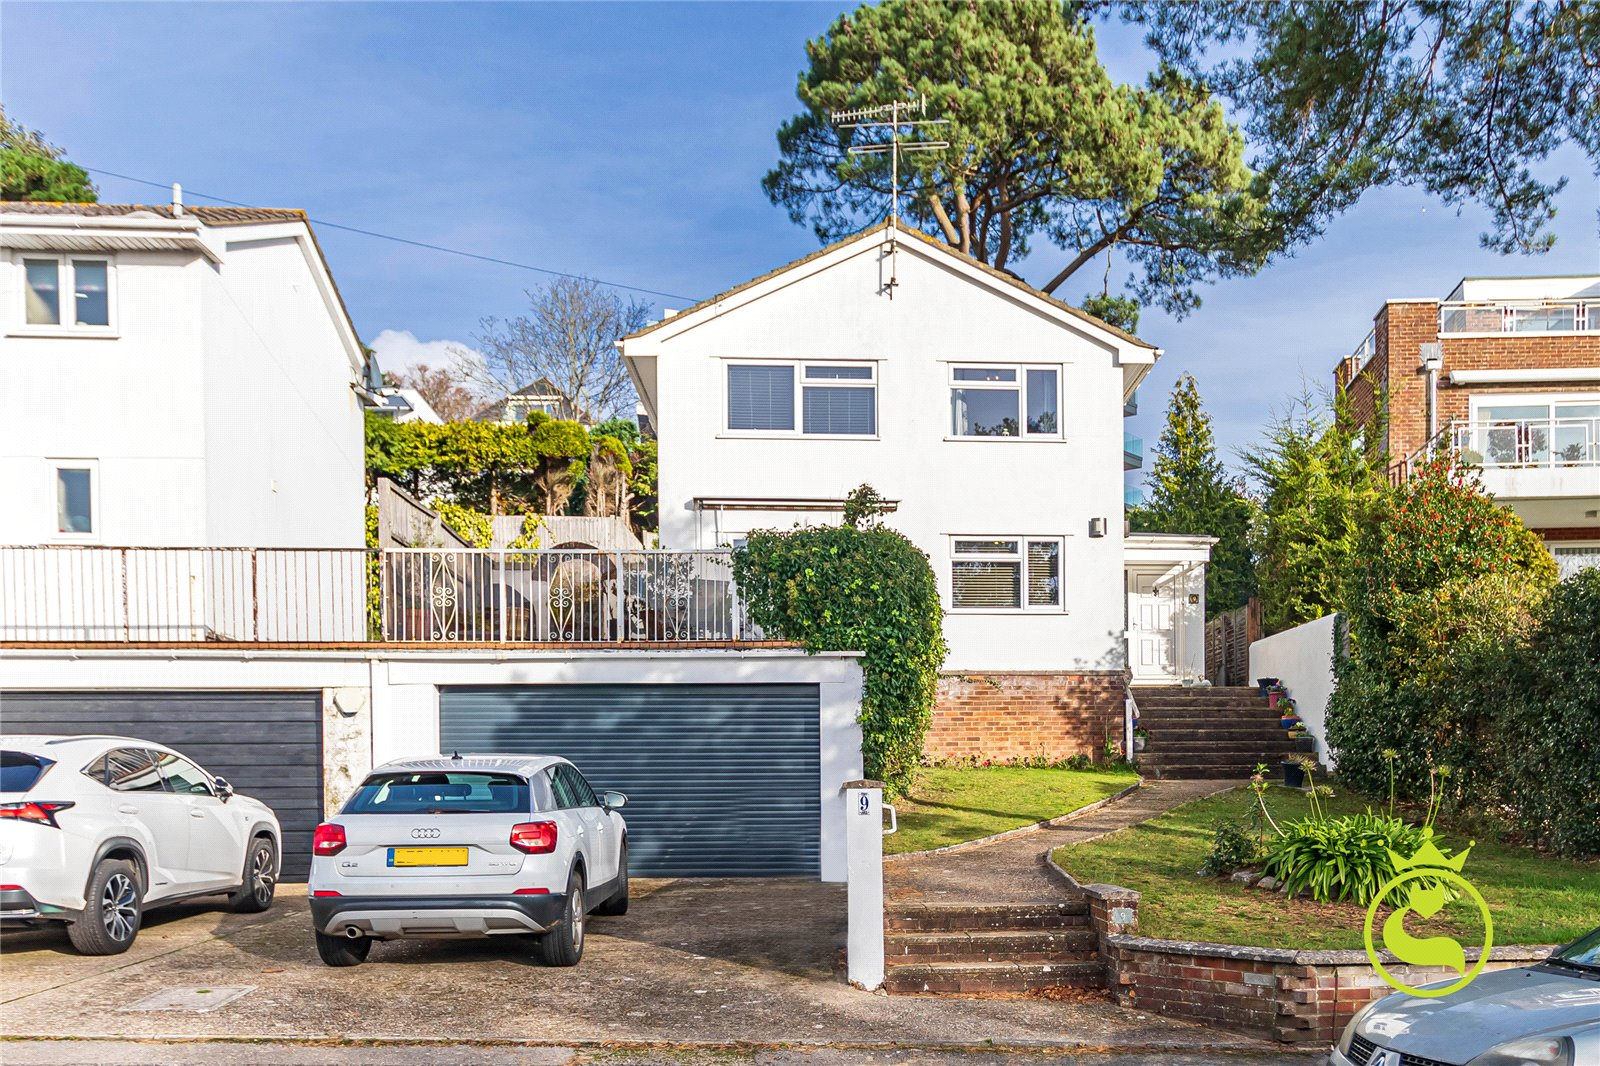 3 bed house for sale in Powell Road, Lower Parkstone, BH14